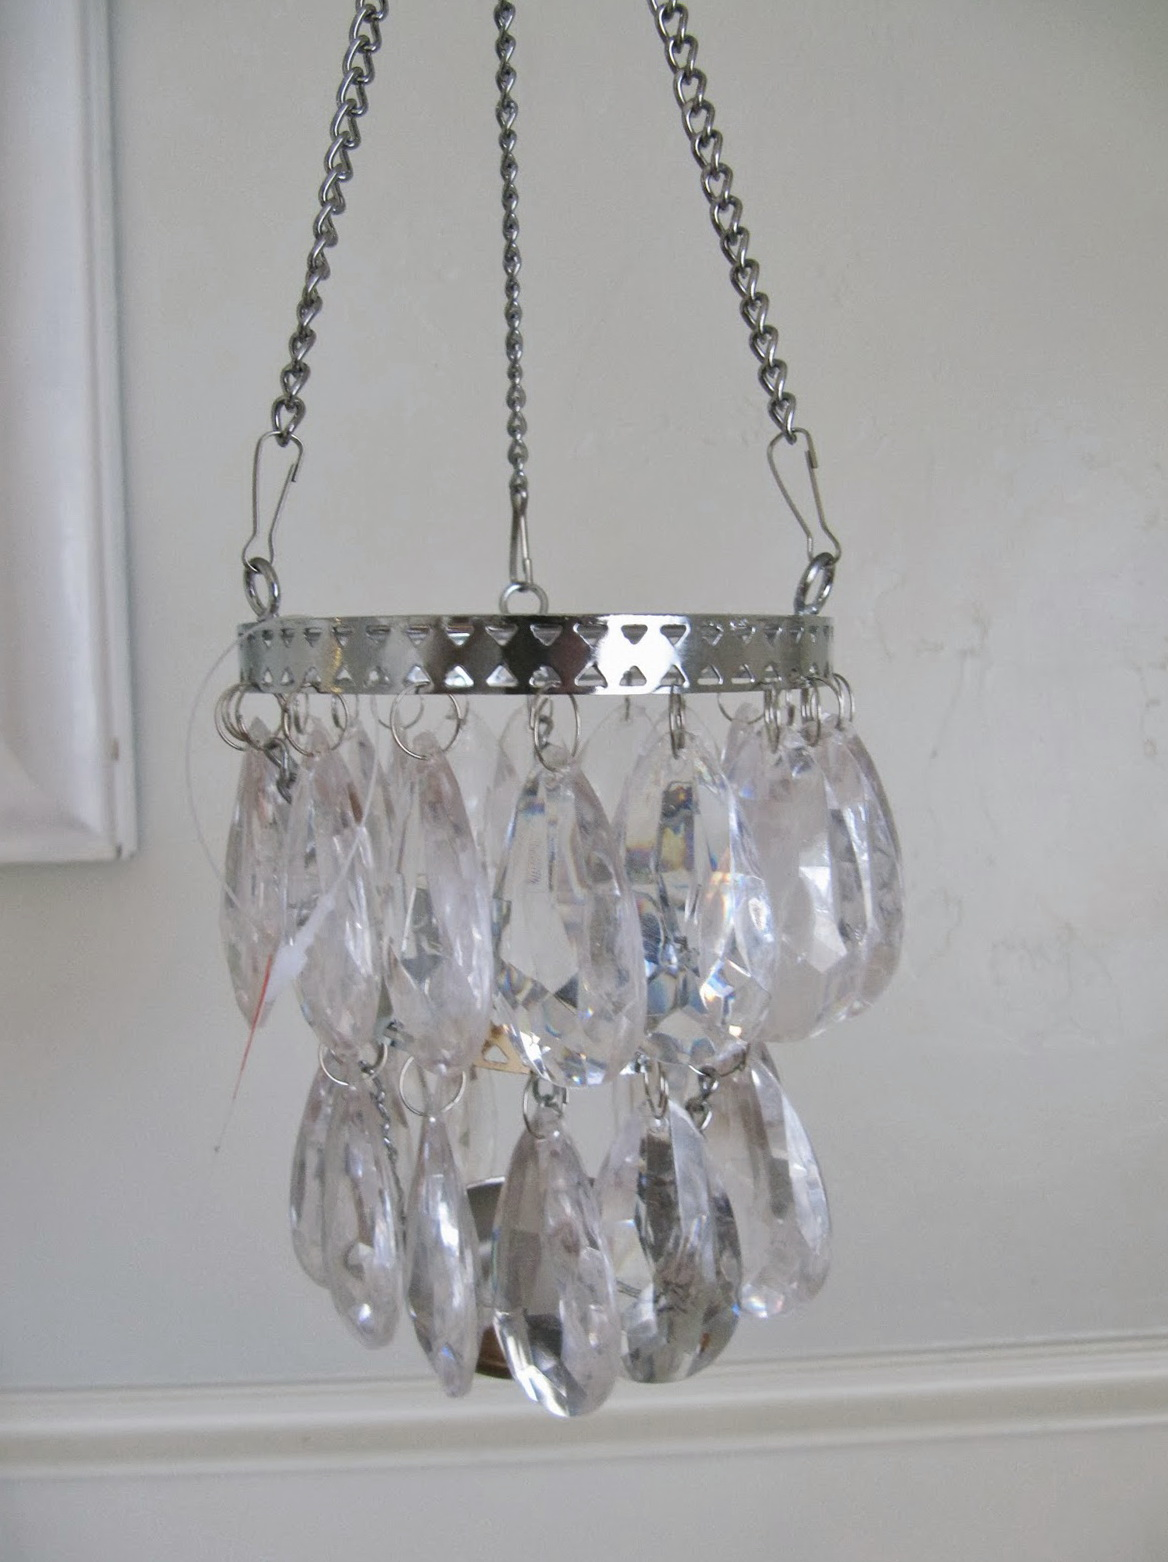 Hanging tea light candle chandelier home design ideas hanging tea light candle chandelier arubaitofo Gallery